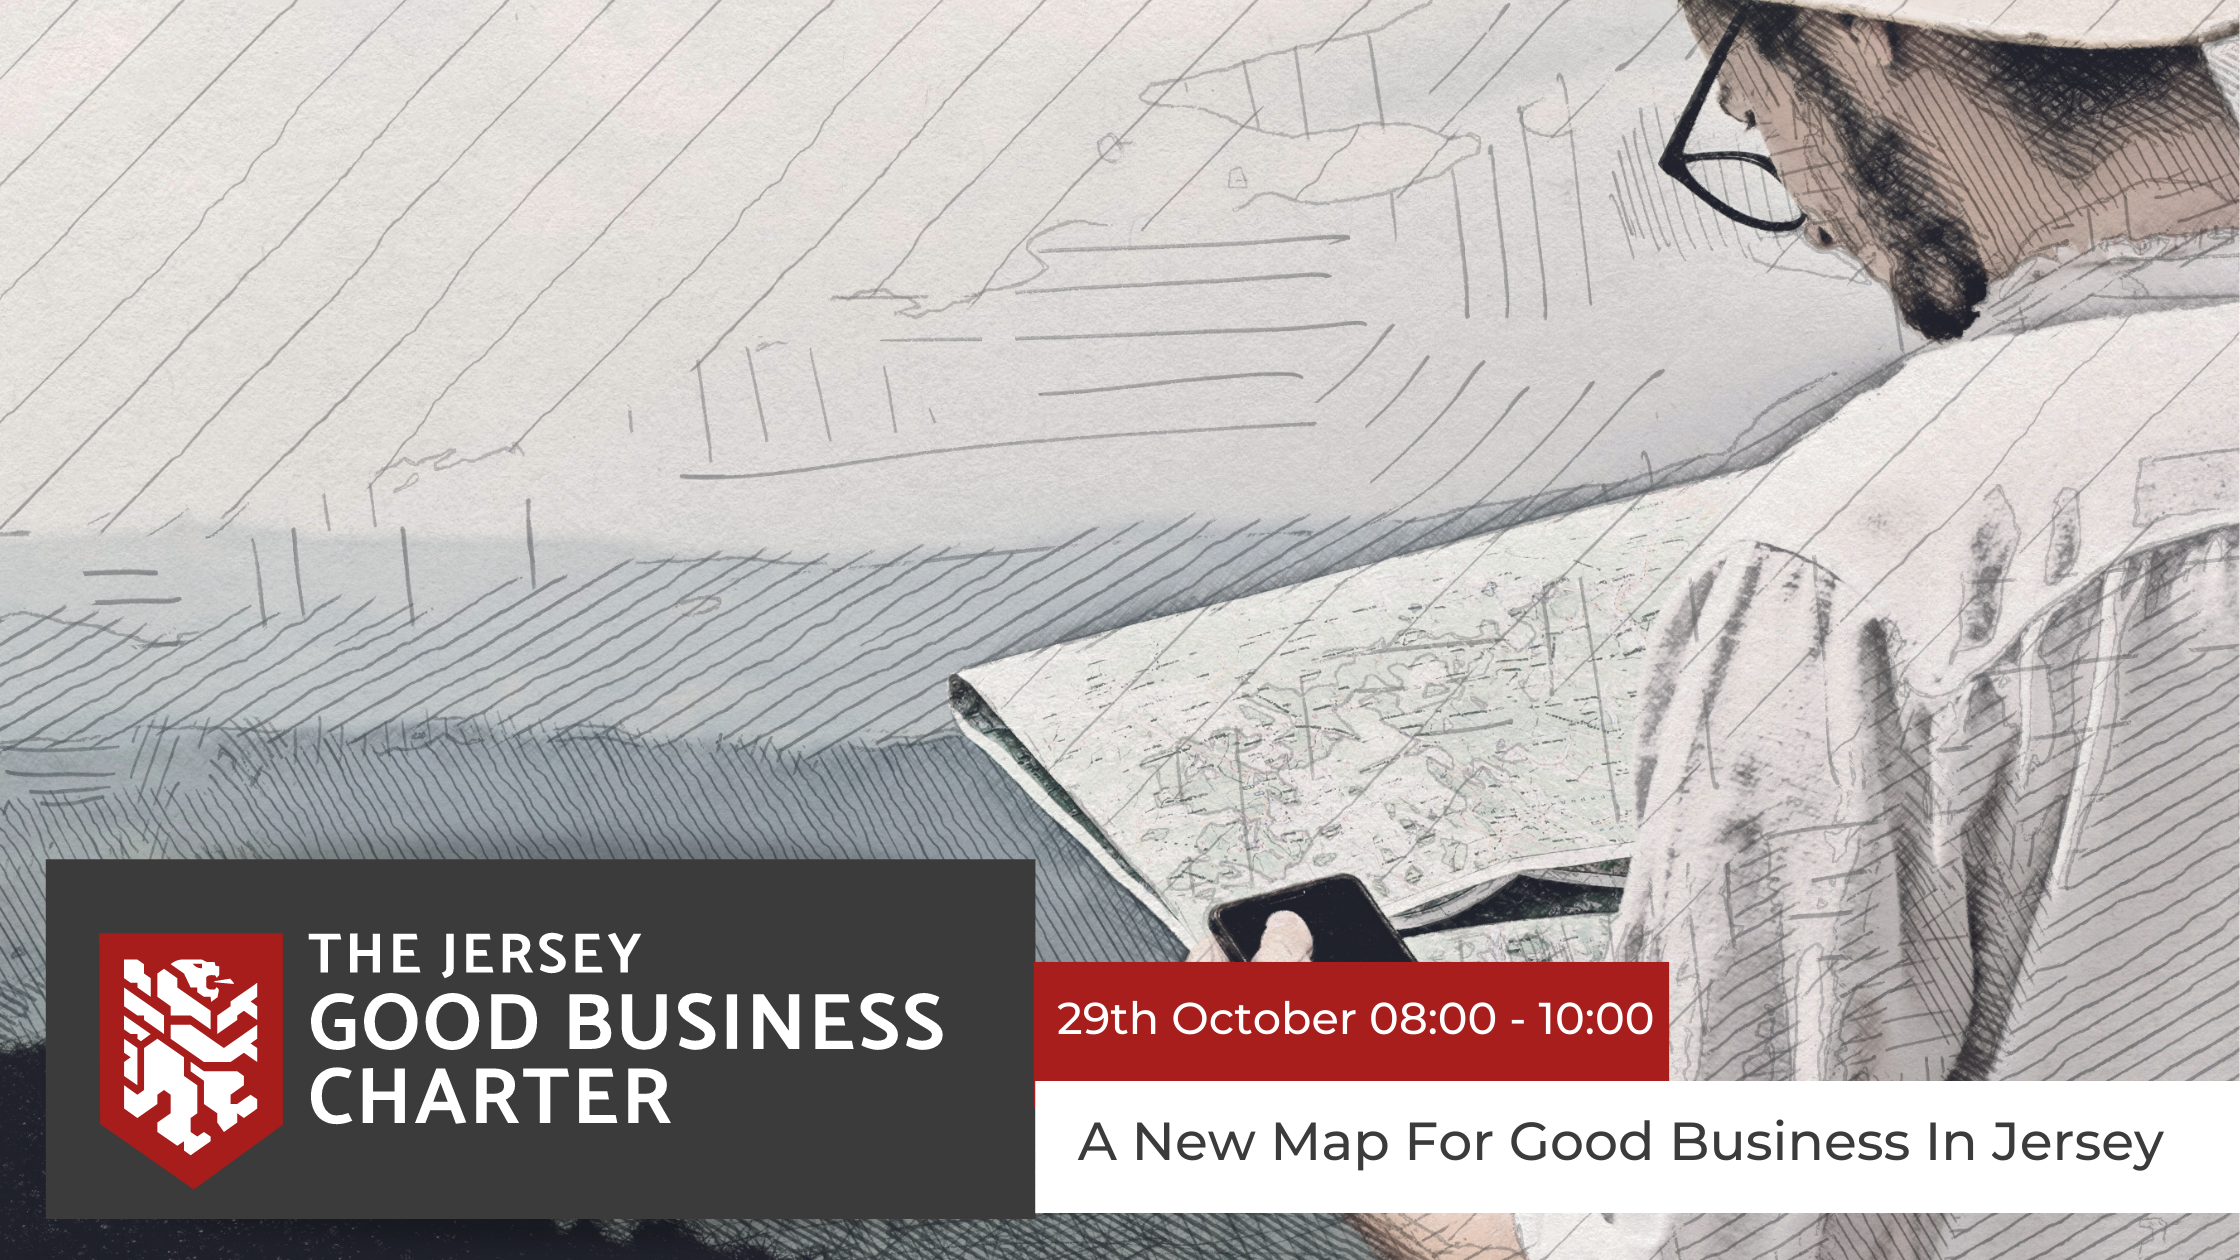 A New Map For Good Business In Jersey